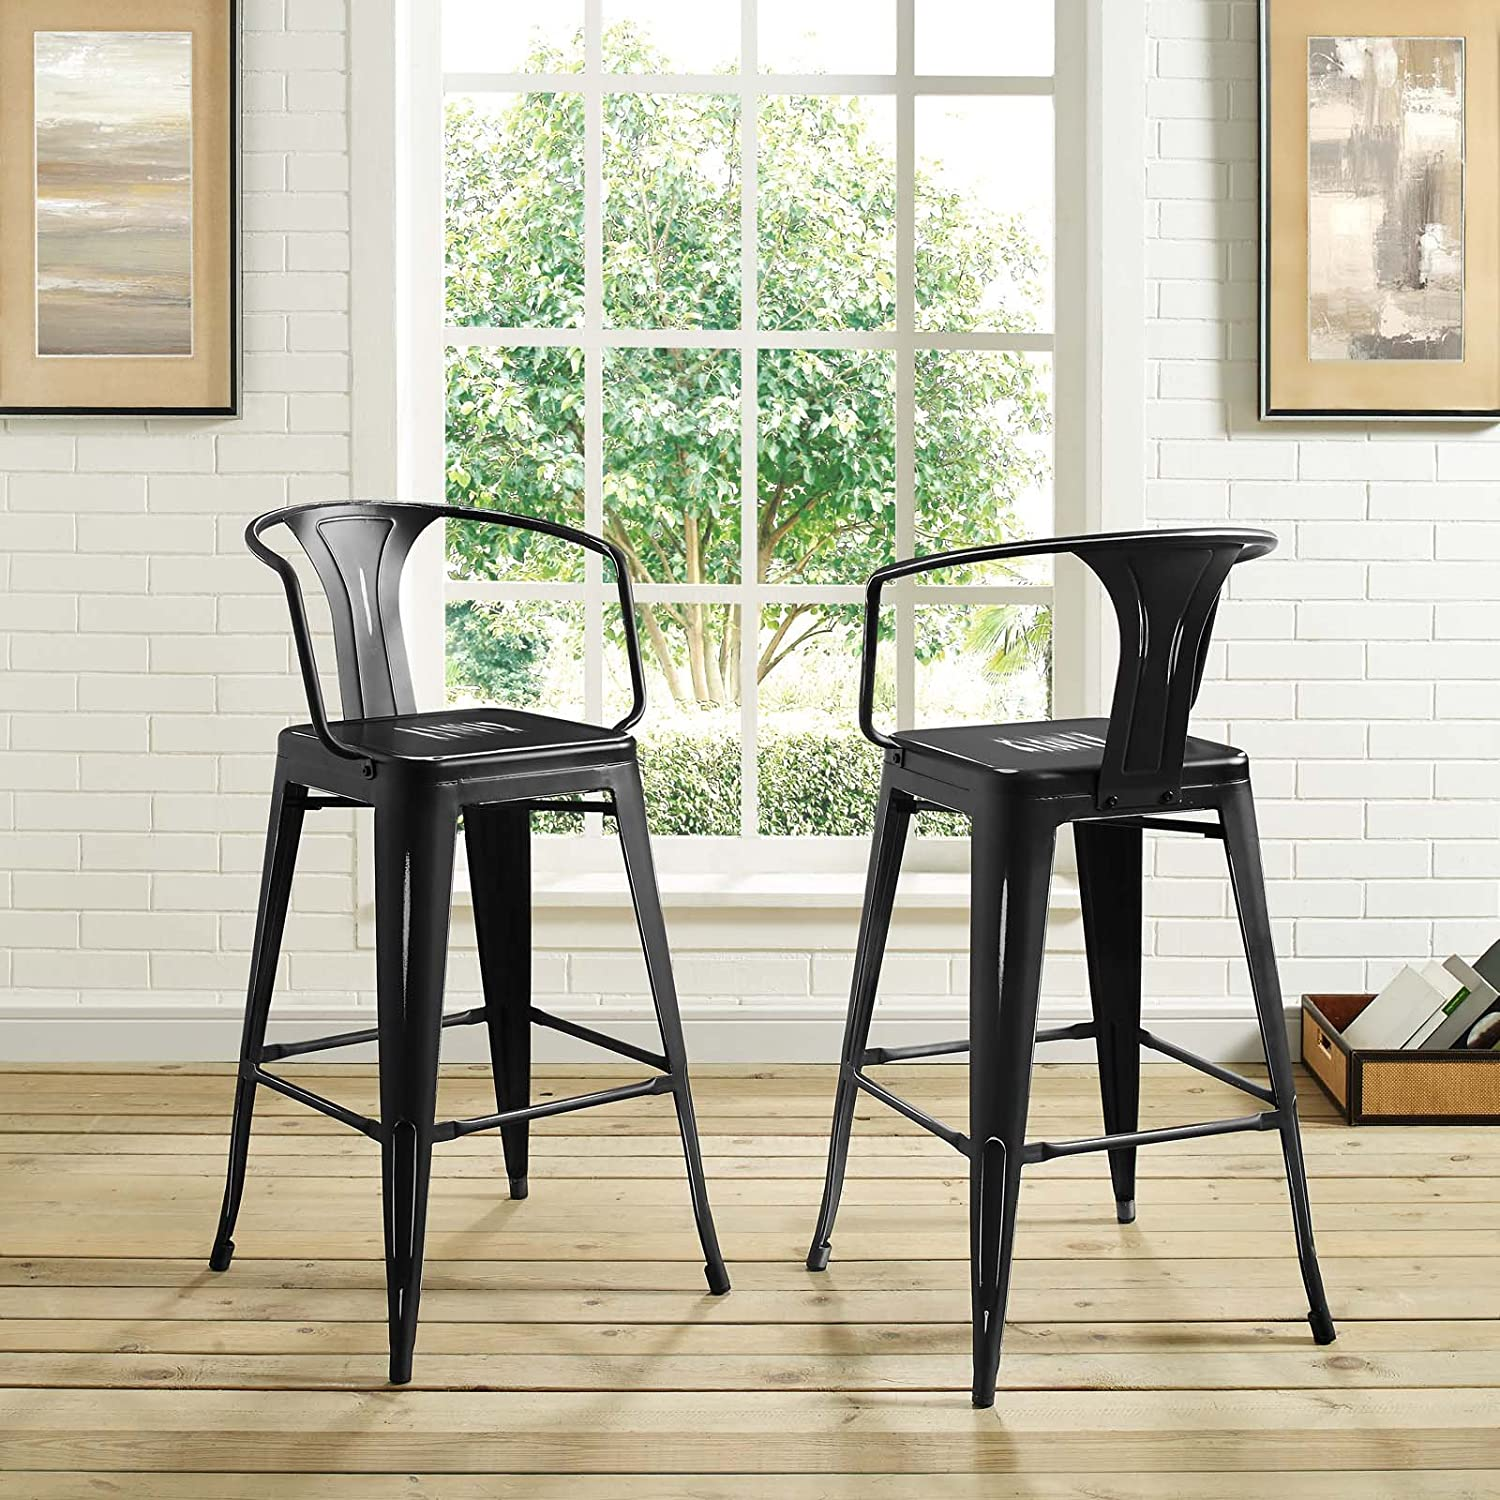 Modway Promenade Industrial Modern Aluminum Bistro Bar Stool with Arms in Black